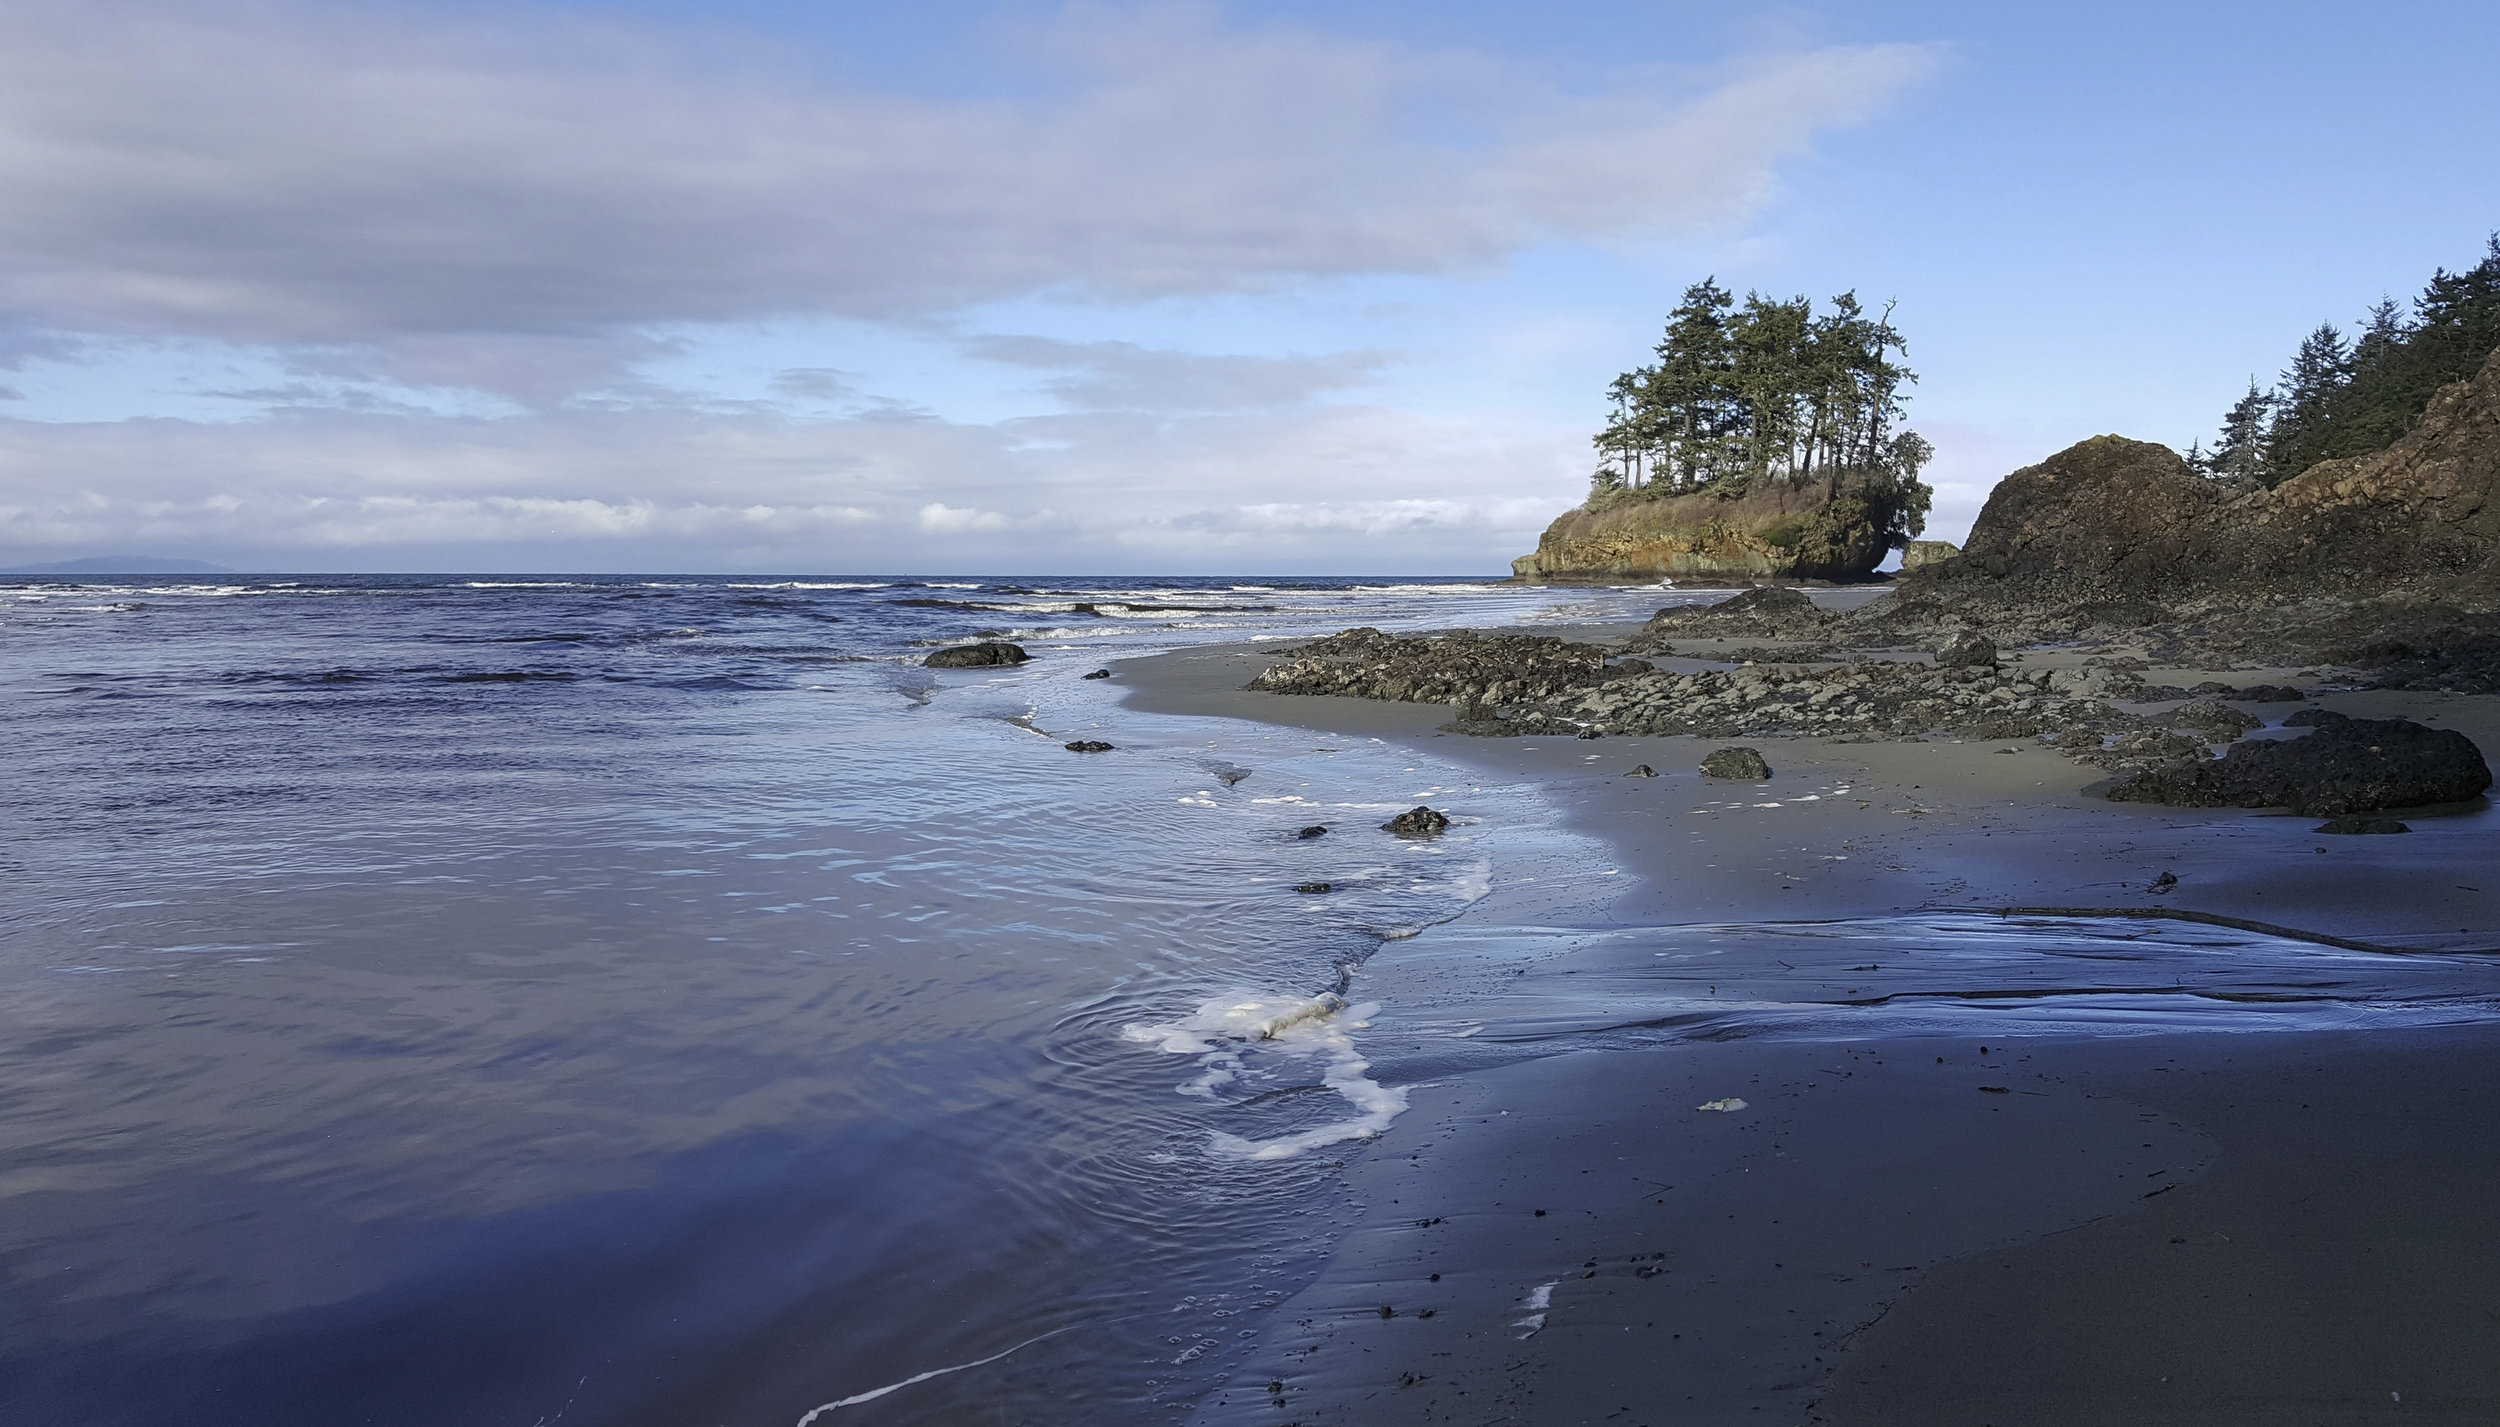 Tongue Point, in the Salt Creek Recreation Area on the north coast of the Olympic Peninsula, is a popular spot for surfers, tide pool explorers, and beach walkers. Photo by Robin Stanton / The Nature Conservancy.